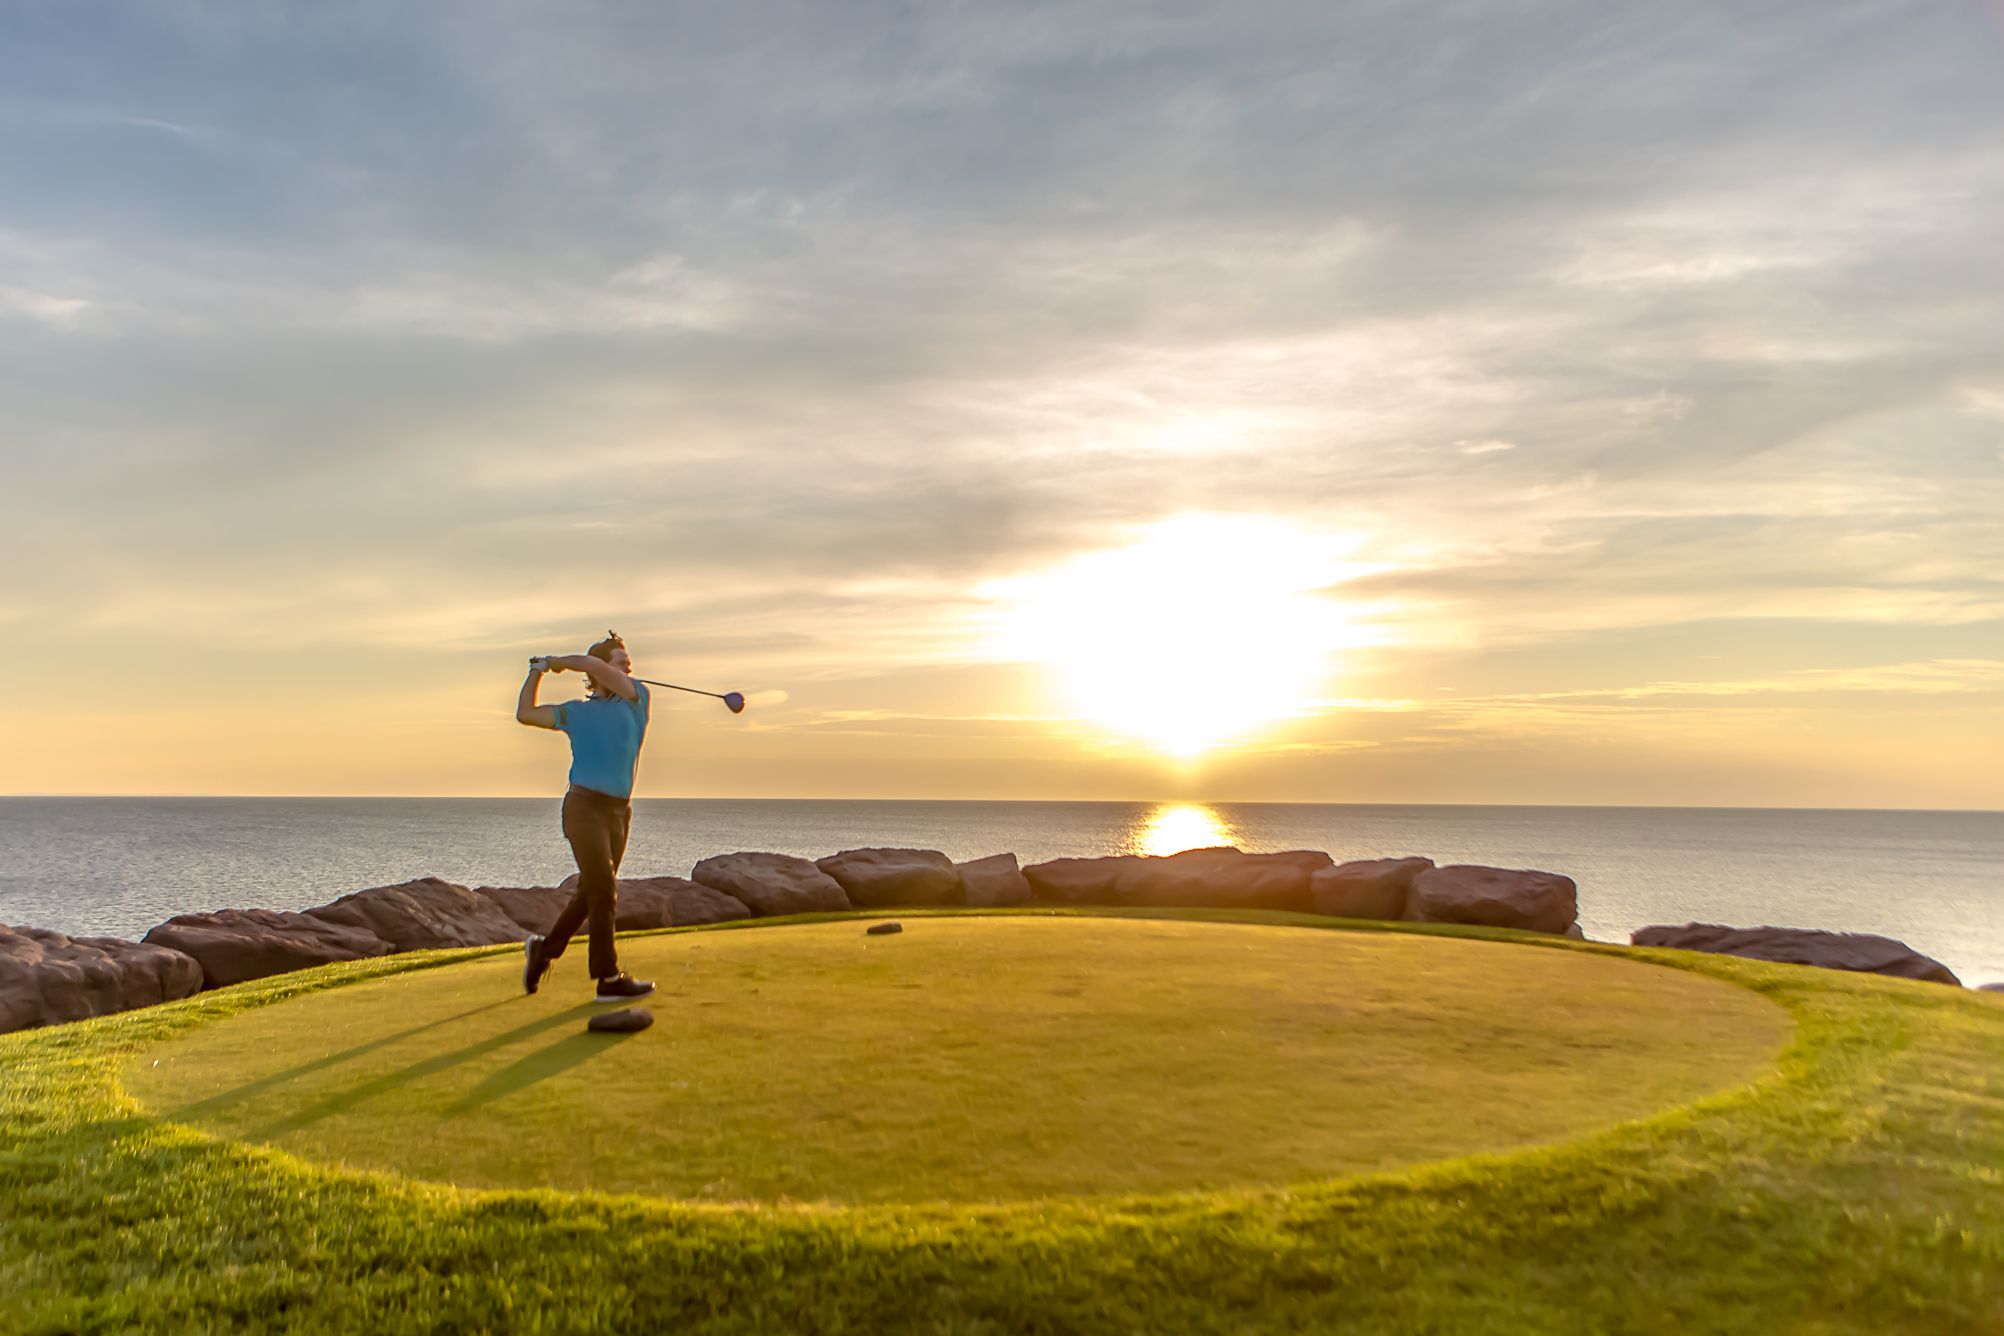 Golf is all about driving the ball straight. Classic links golf is all about keeping your ball low and away from the ocean. Here are some tips for mastering a links course.